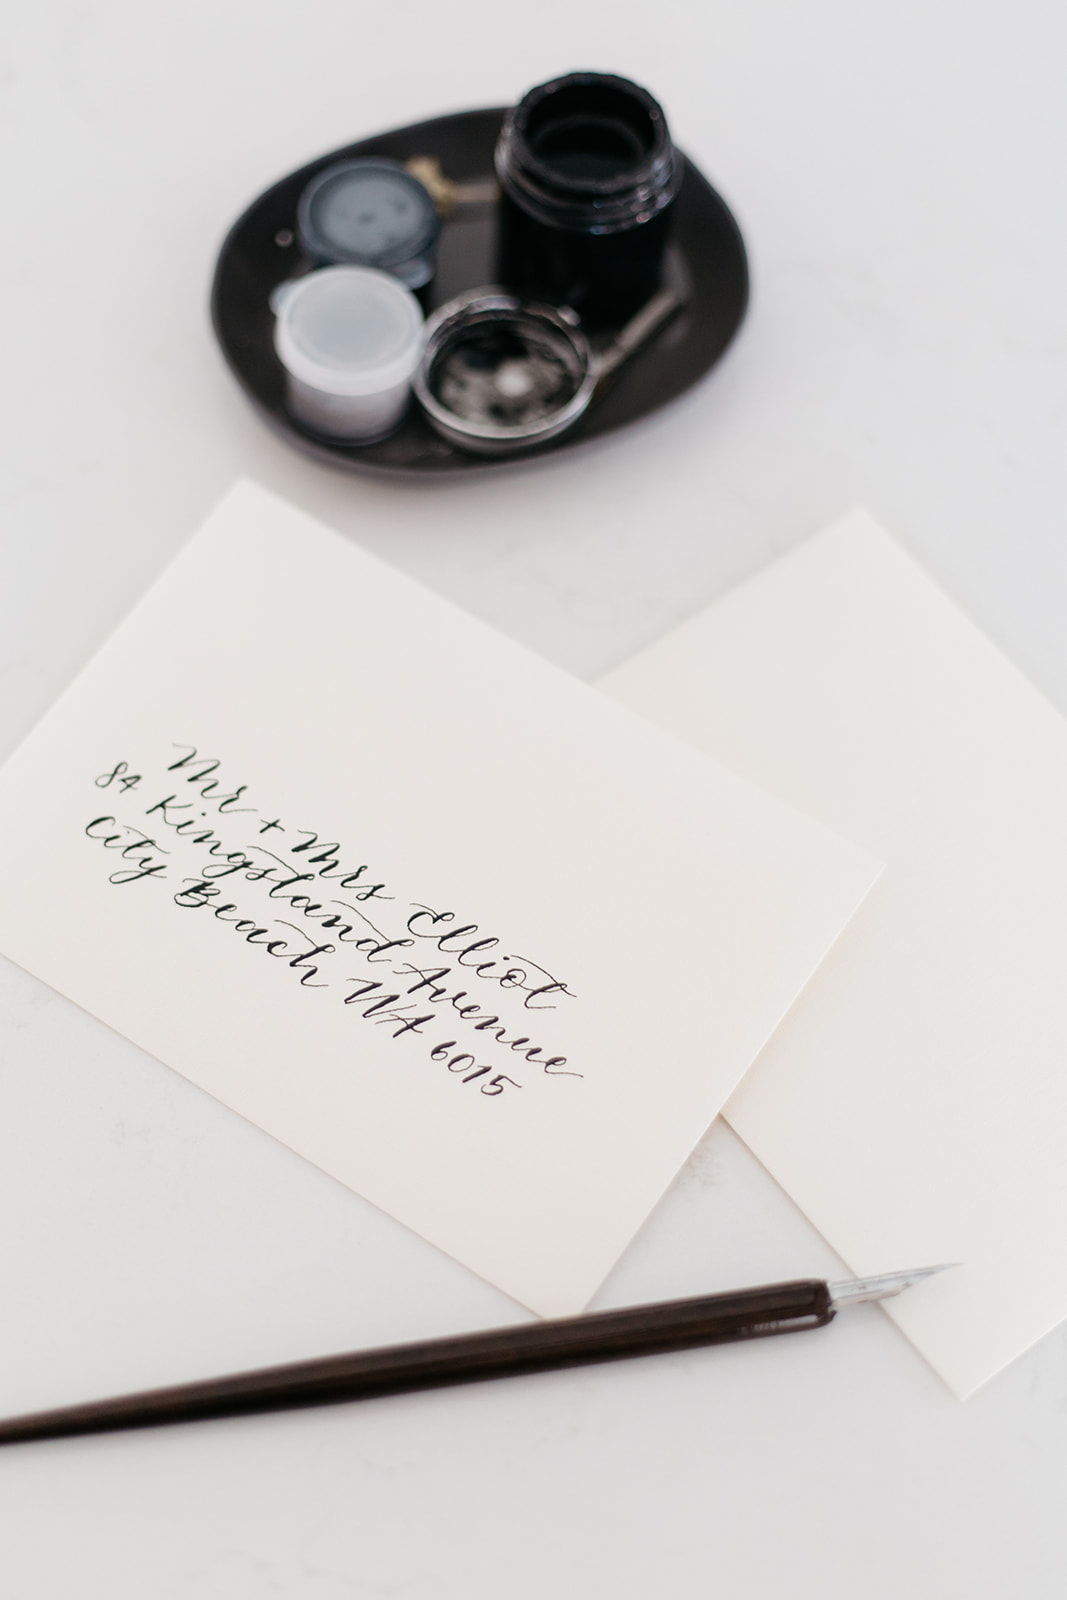 Photo of calligraphy taken by Montreal photographer.